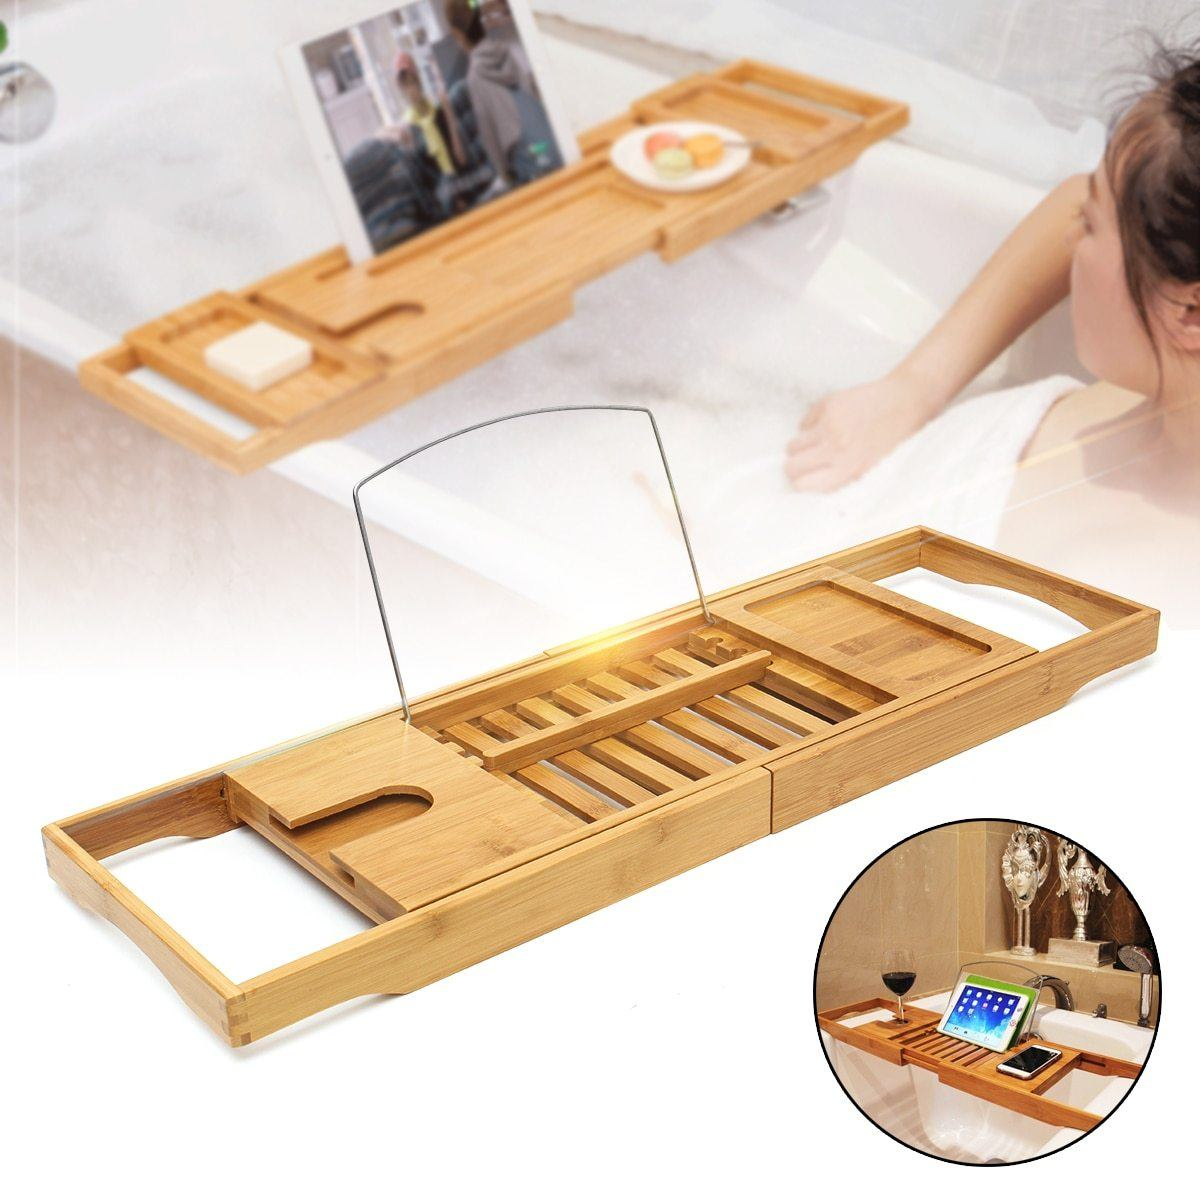 Bathtub Tray - TEROF